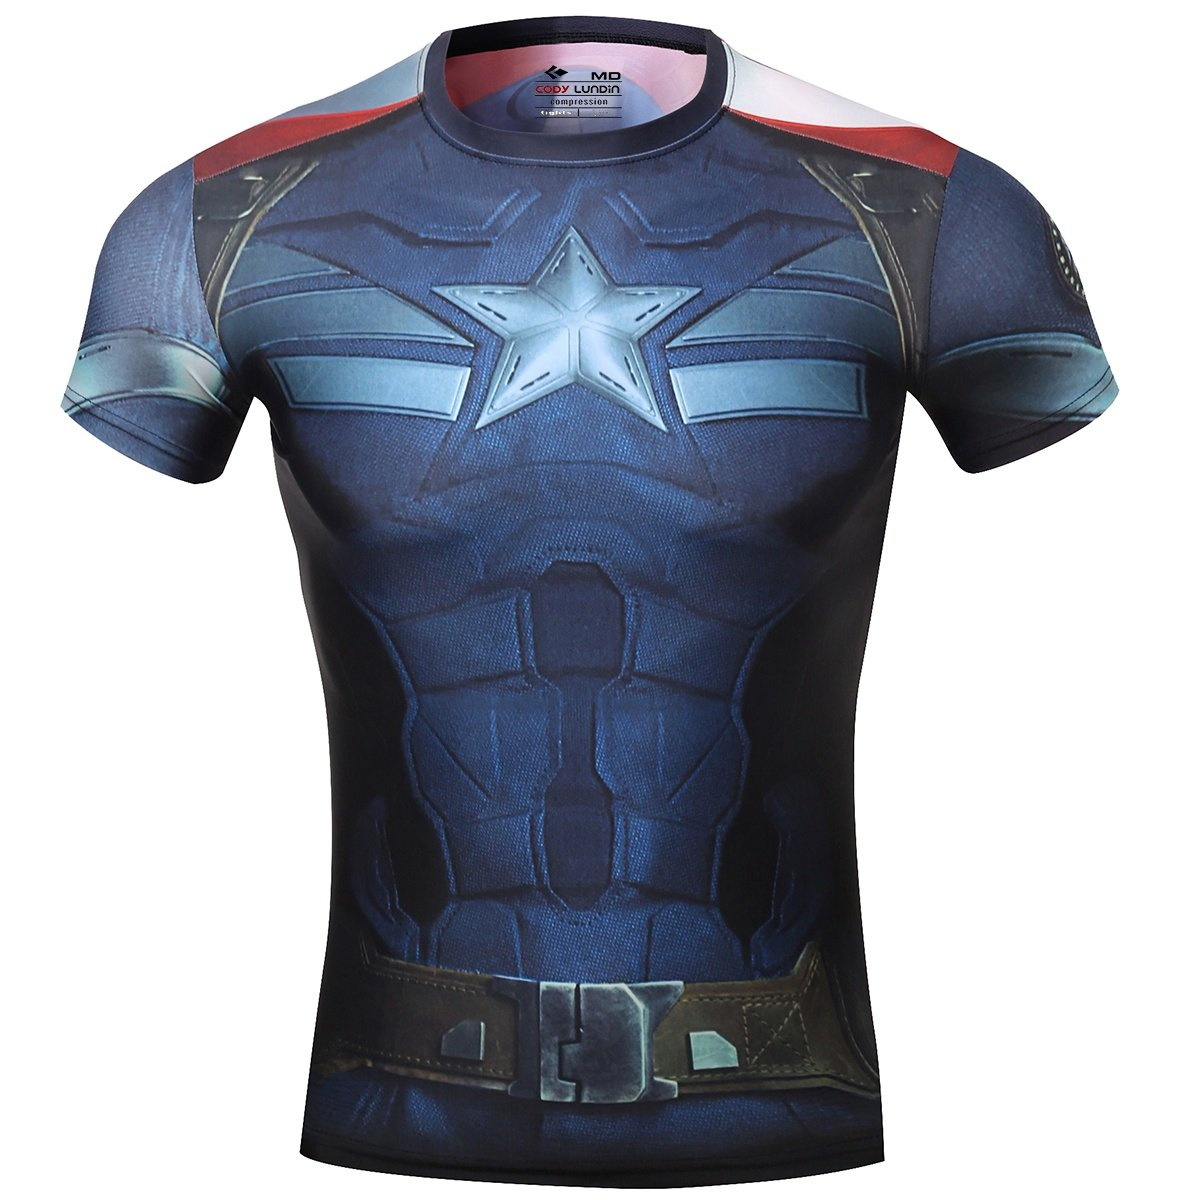 Cody Lundin® Maschile Sonic Compressione Shirts Avengers Capitan America T-Shirt Fitness in Esecuzione Collant P201506143